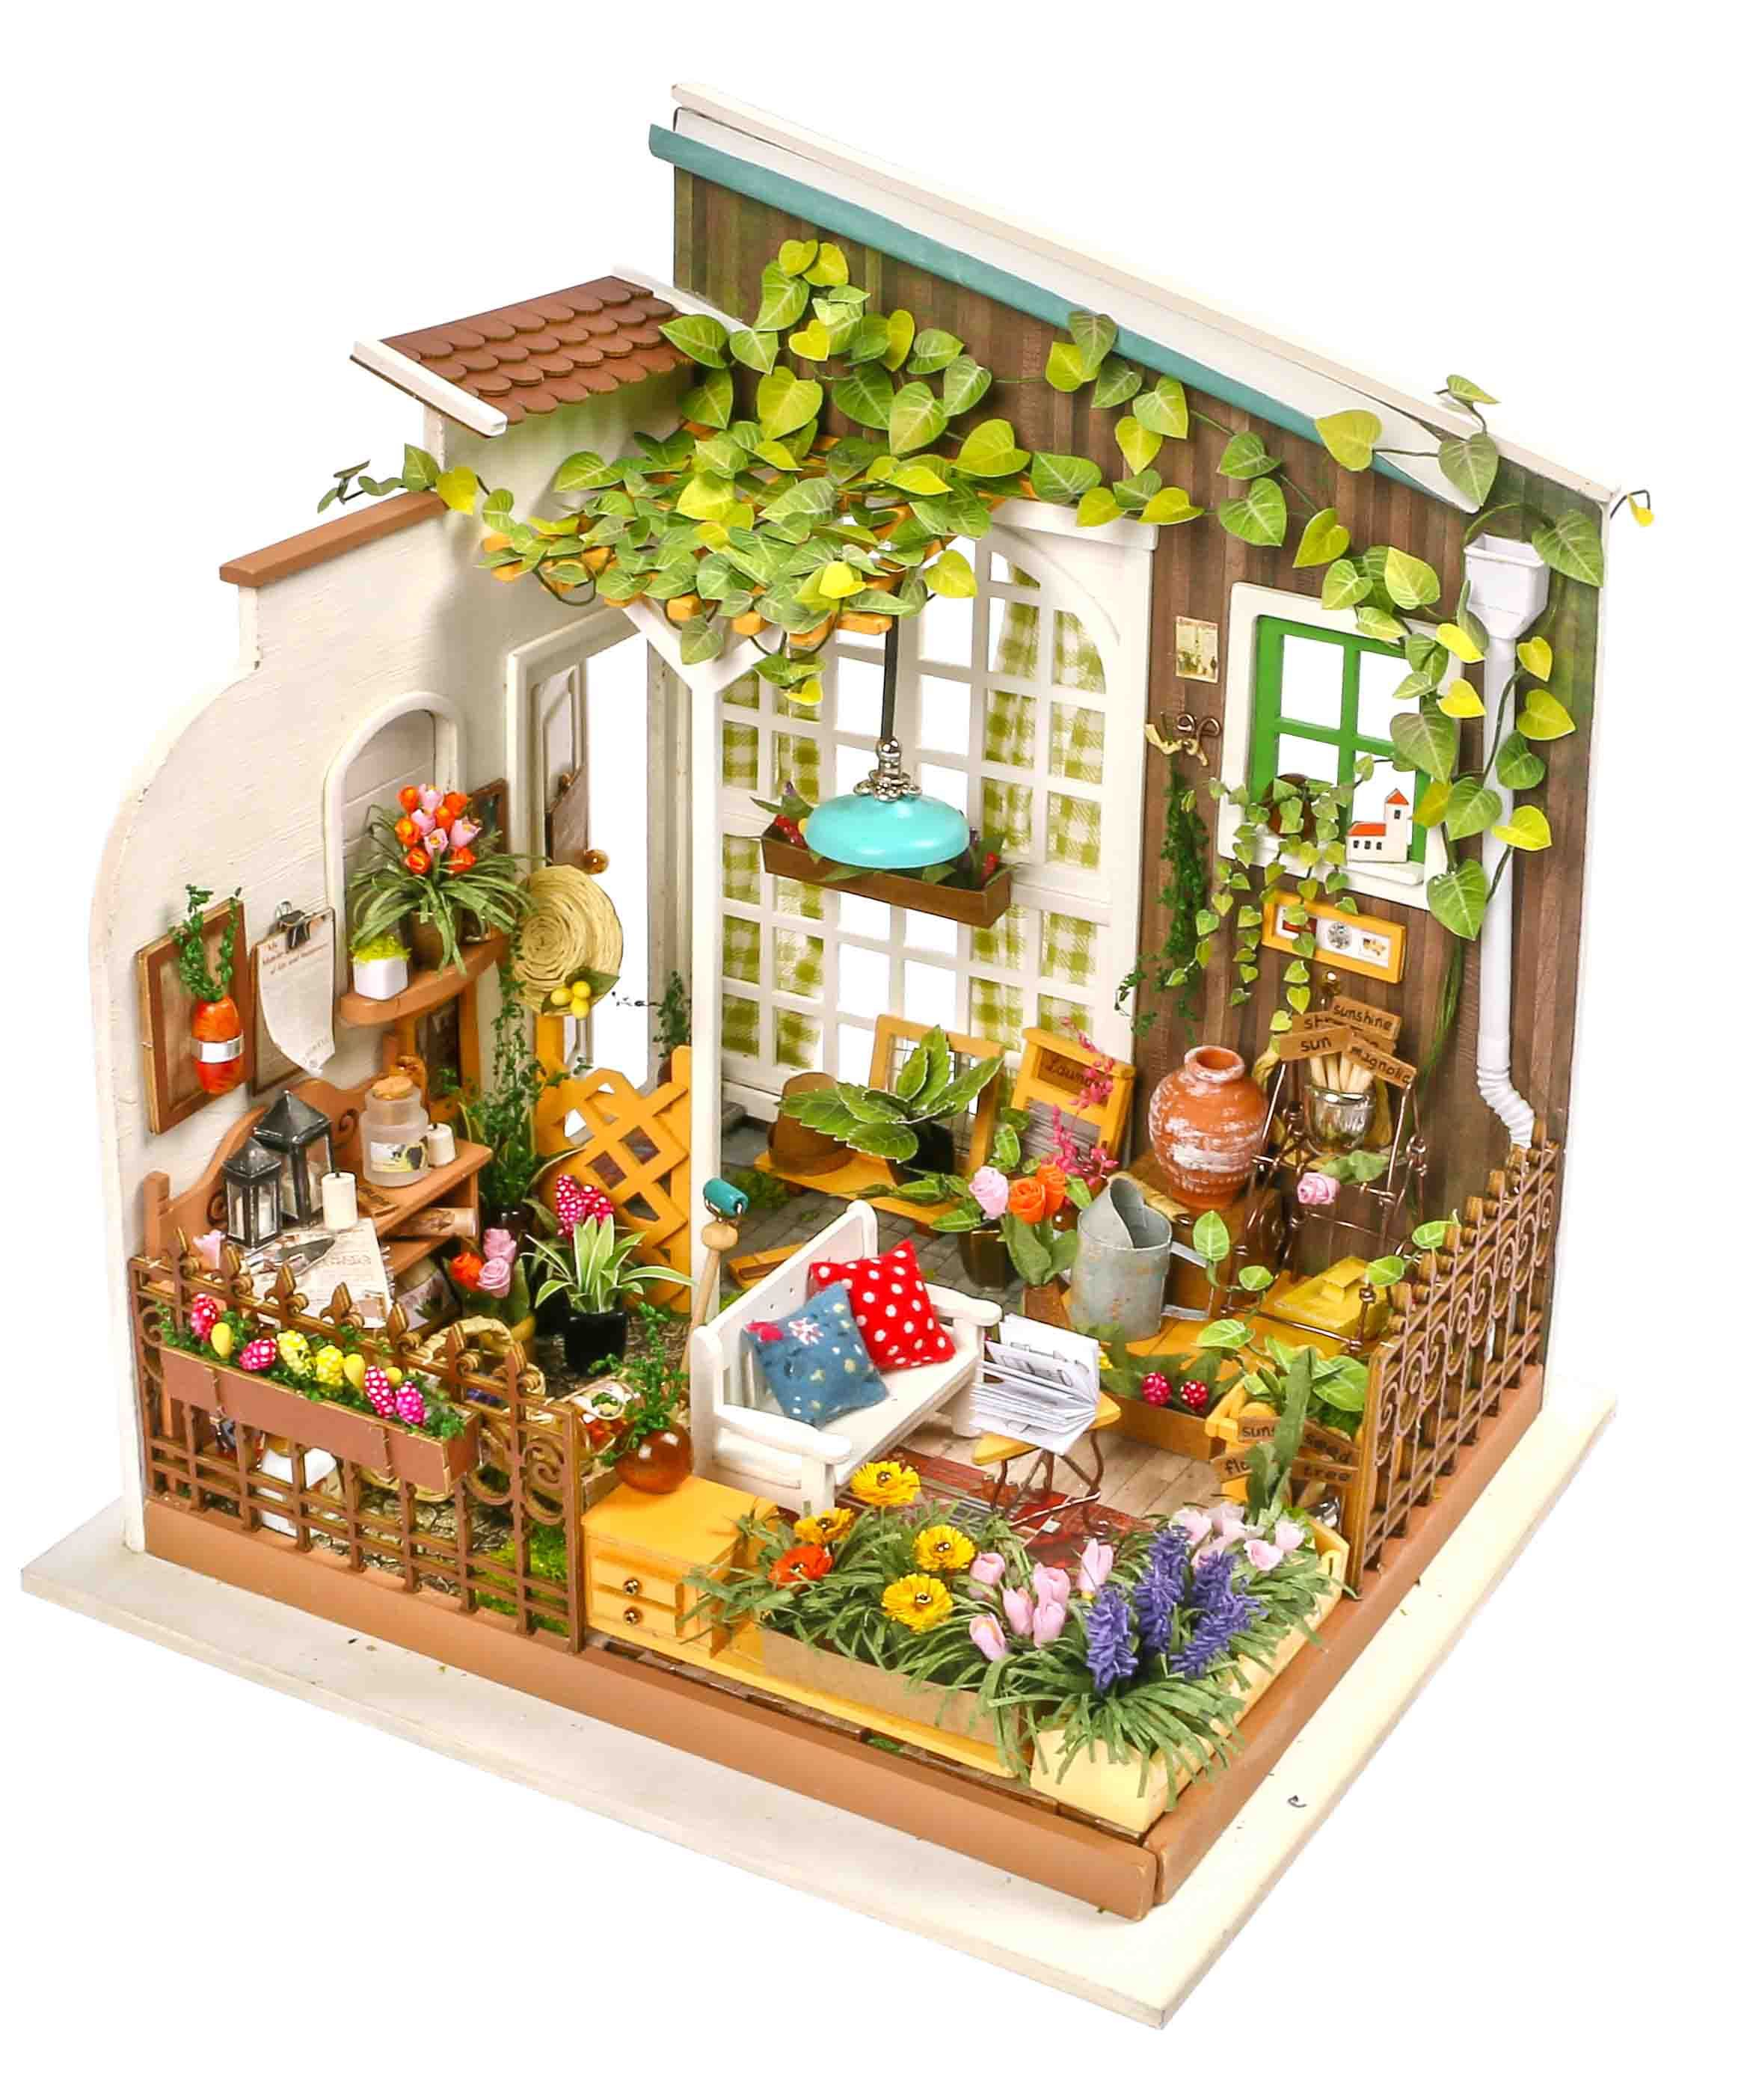 DIY Wooden Garden Flower House 3D Dollhouse Furniture Kit Light Creative Gift